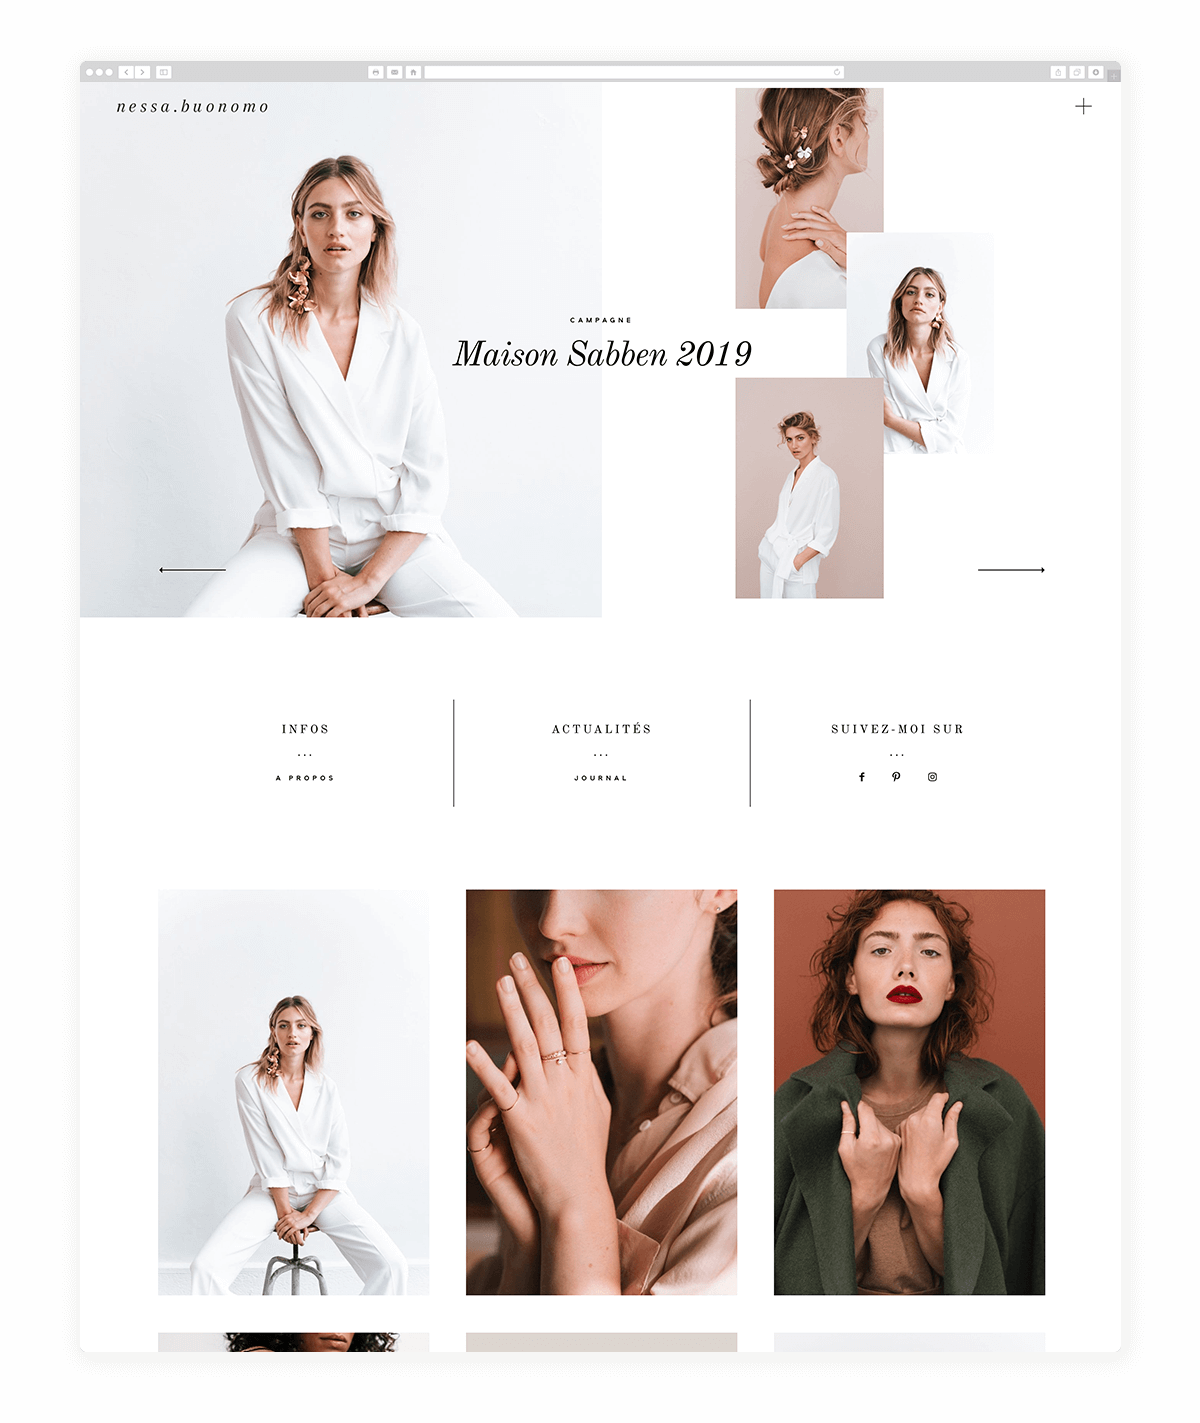 11 Fantastic photography websites built with Narcisse- nessa buonomo